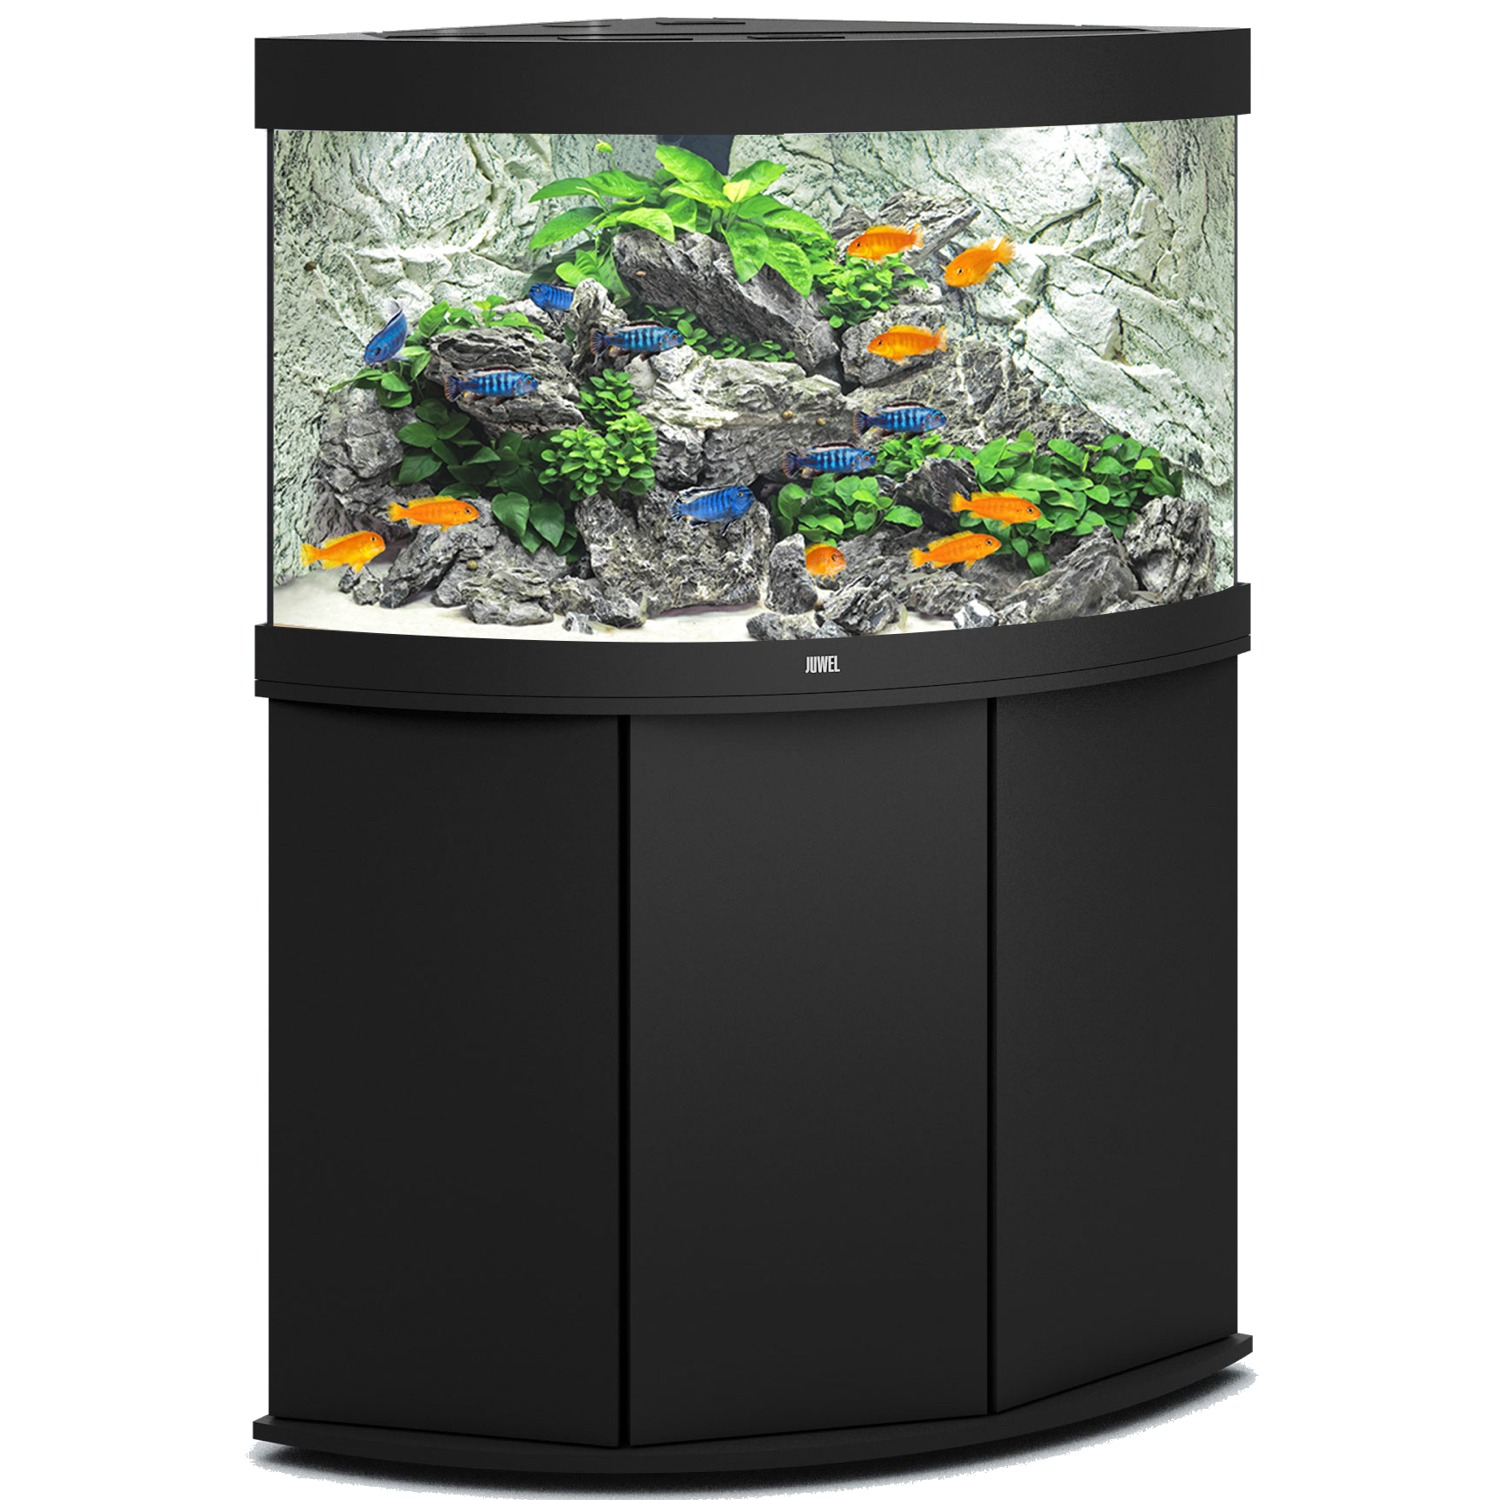 aquarium juwel trigon 190 led dim 99 x 70 x 60 cm 190 litres coloris au choix avec ou sans meuble. Black Bedroom Furniture Sets. Home Design Ideas